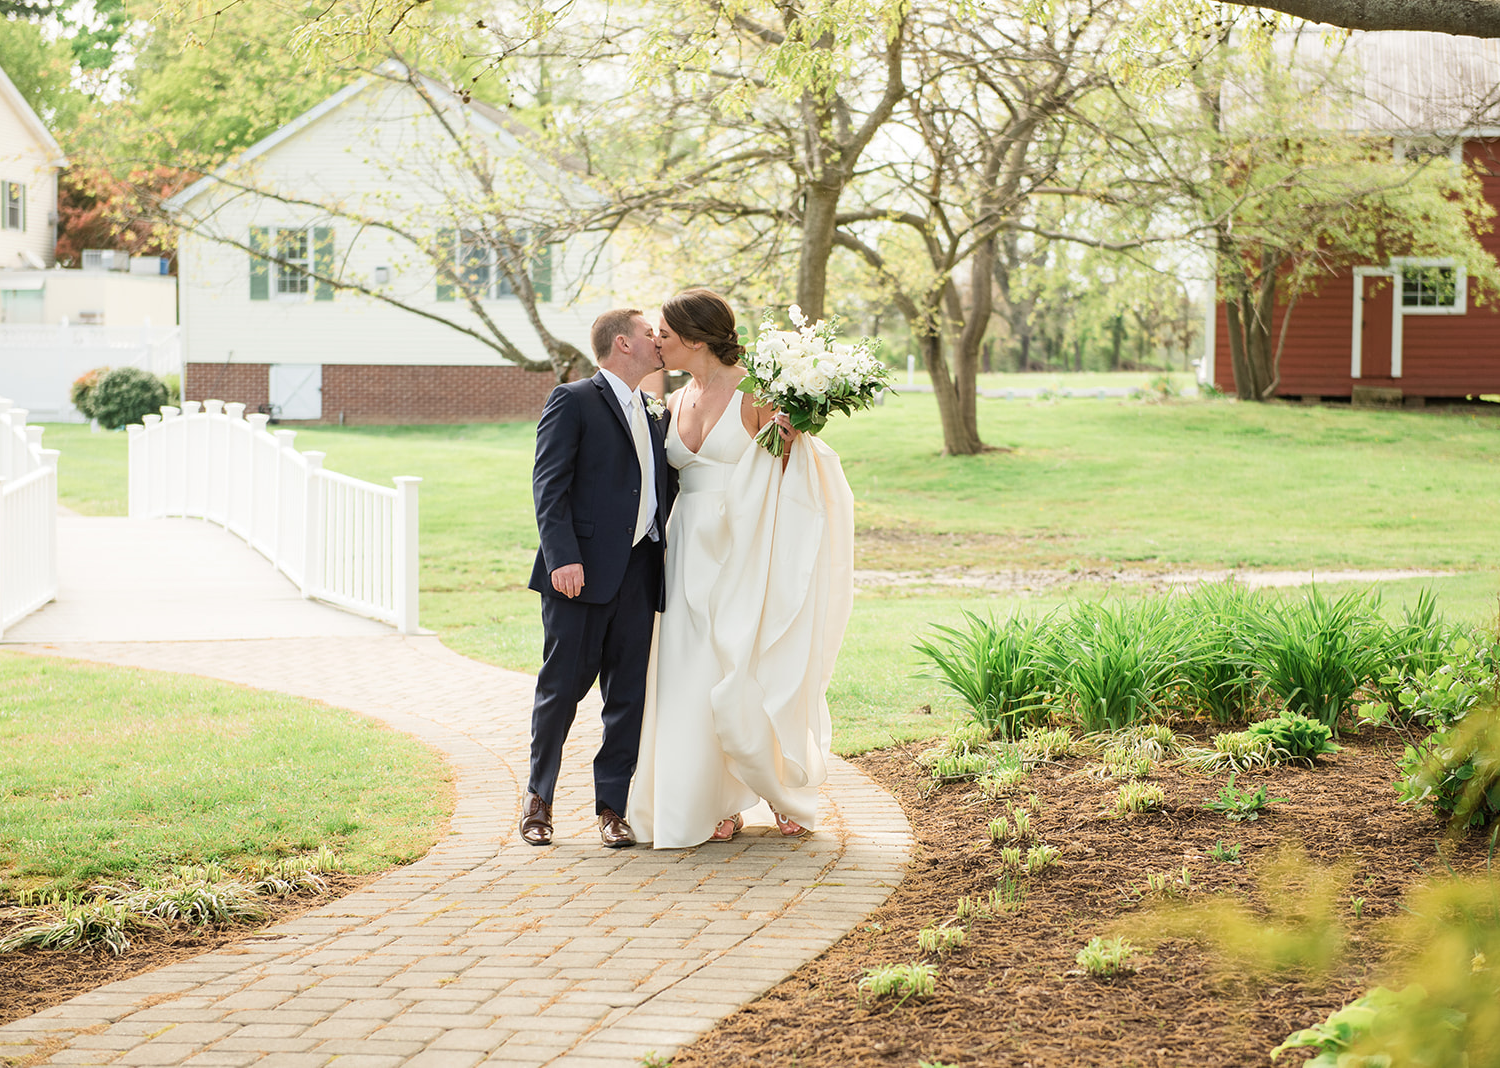 bride and groom share a kiss as they are walking to their wedding ceremony